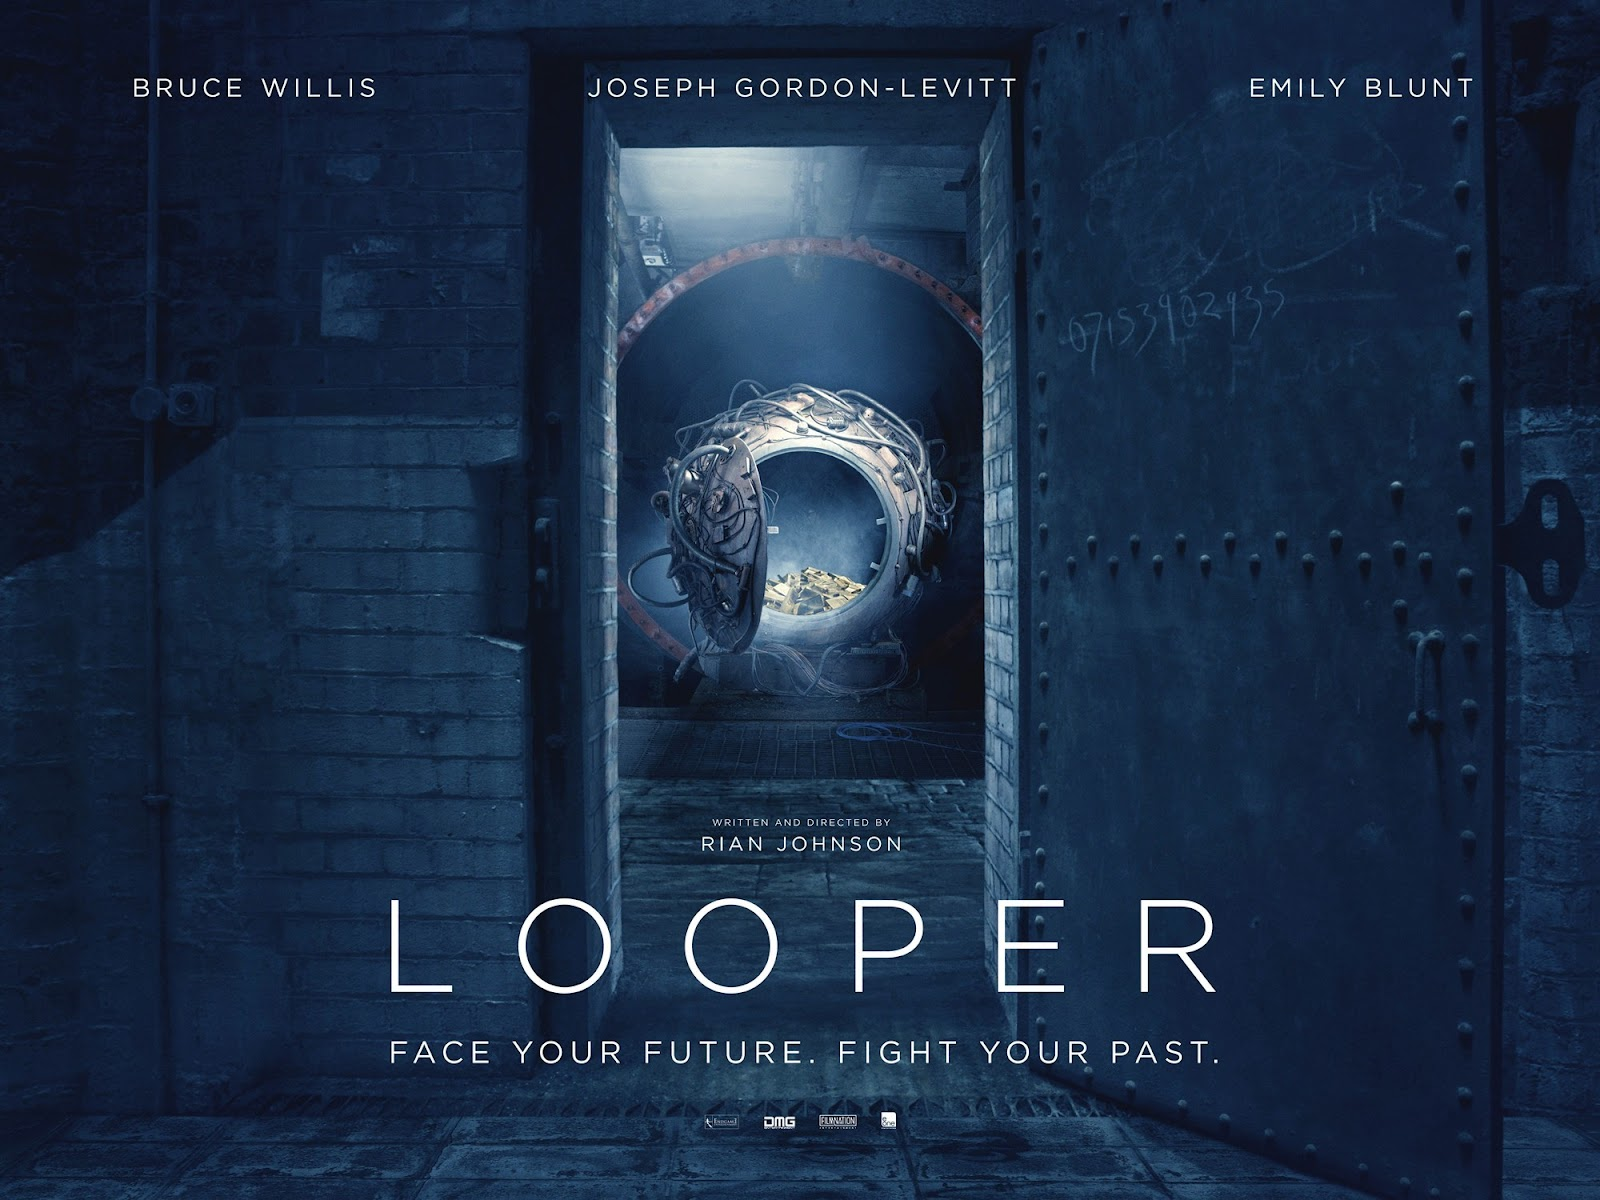 looper images looper poster wallpaper hd wallpaper and background